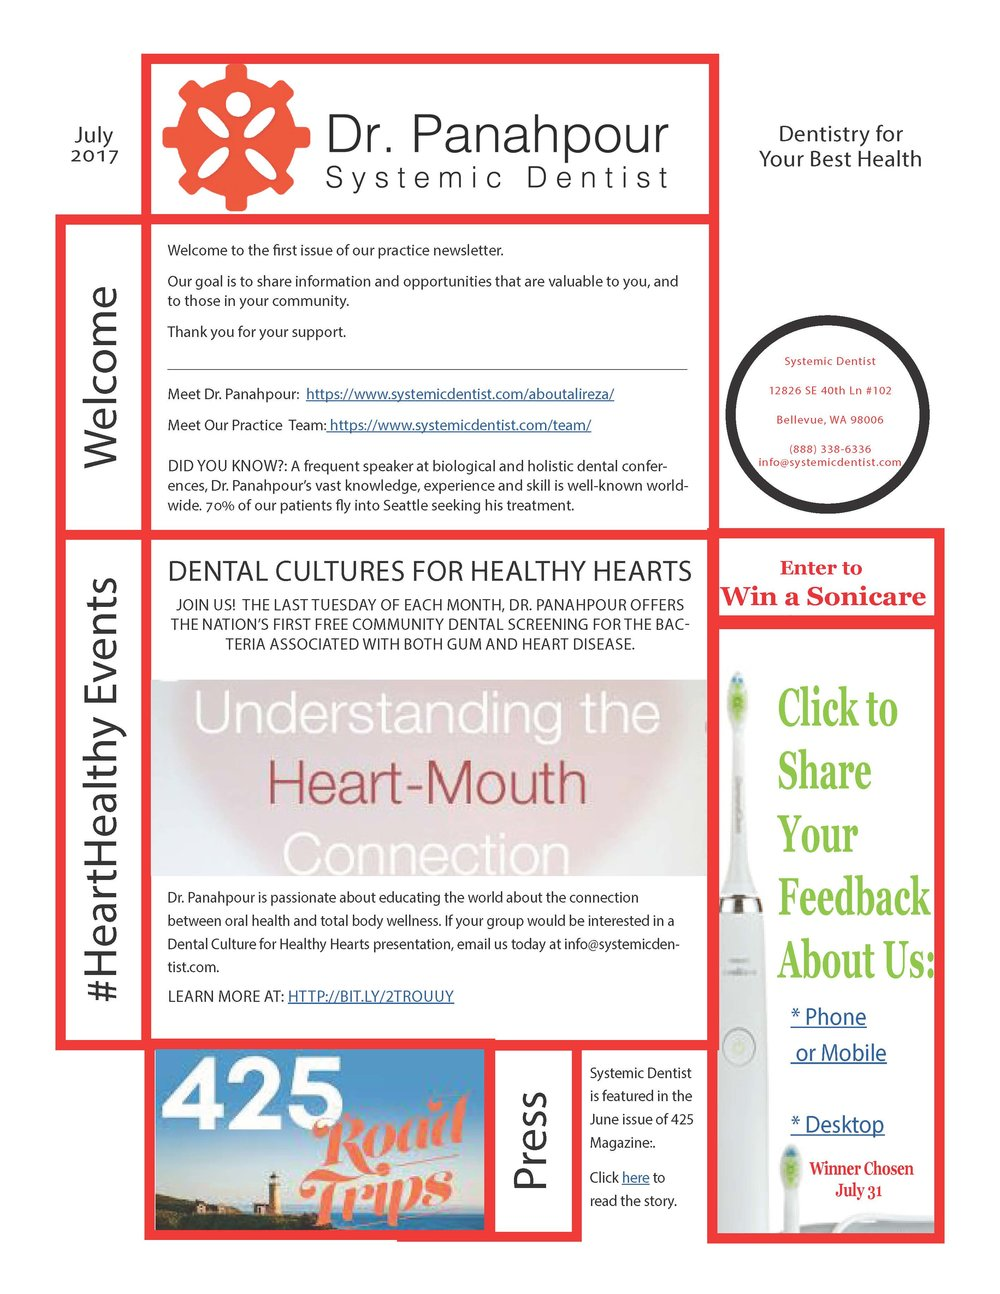 July 2017: In this issue, you'll find invitations to free events as part of our community education series on the newest systemic dental practices and technology, Systemic Dentist promotions, news and more!